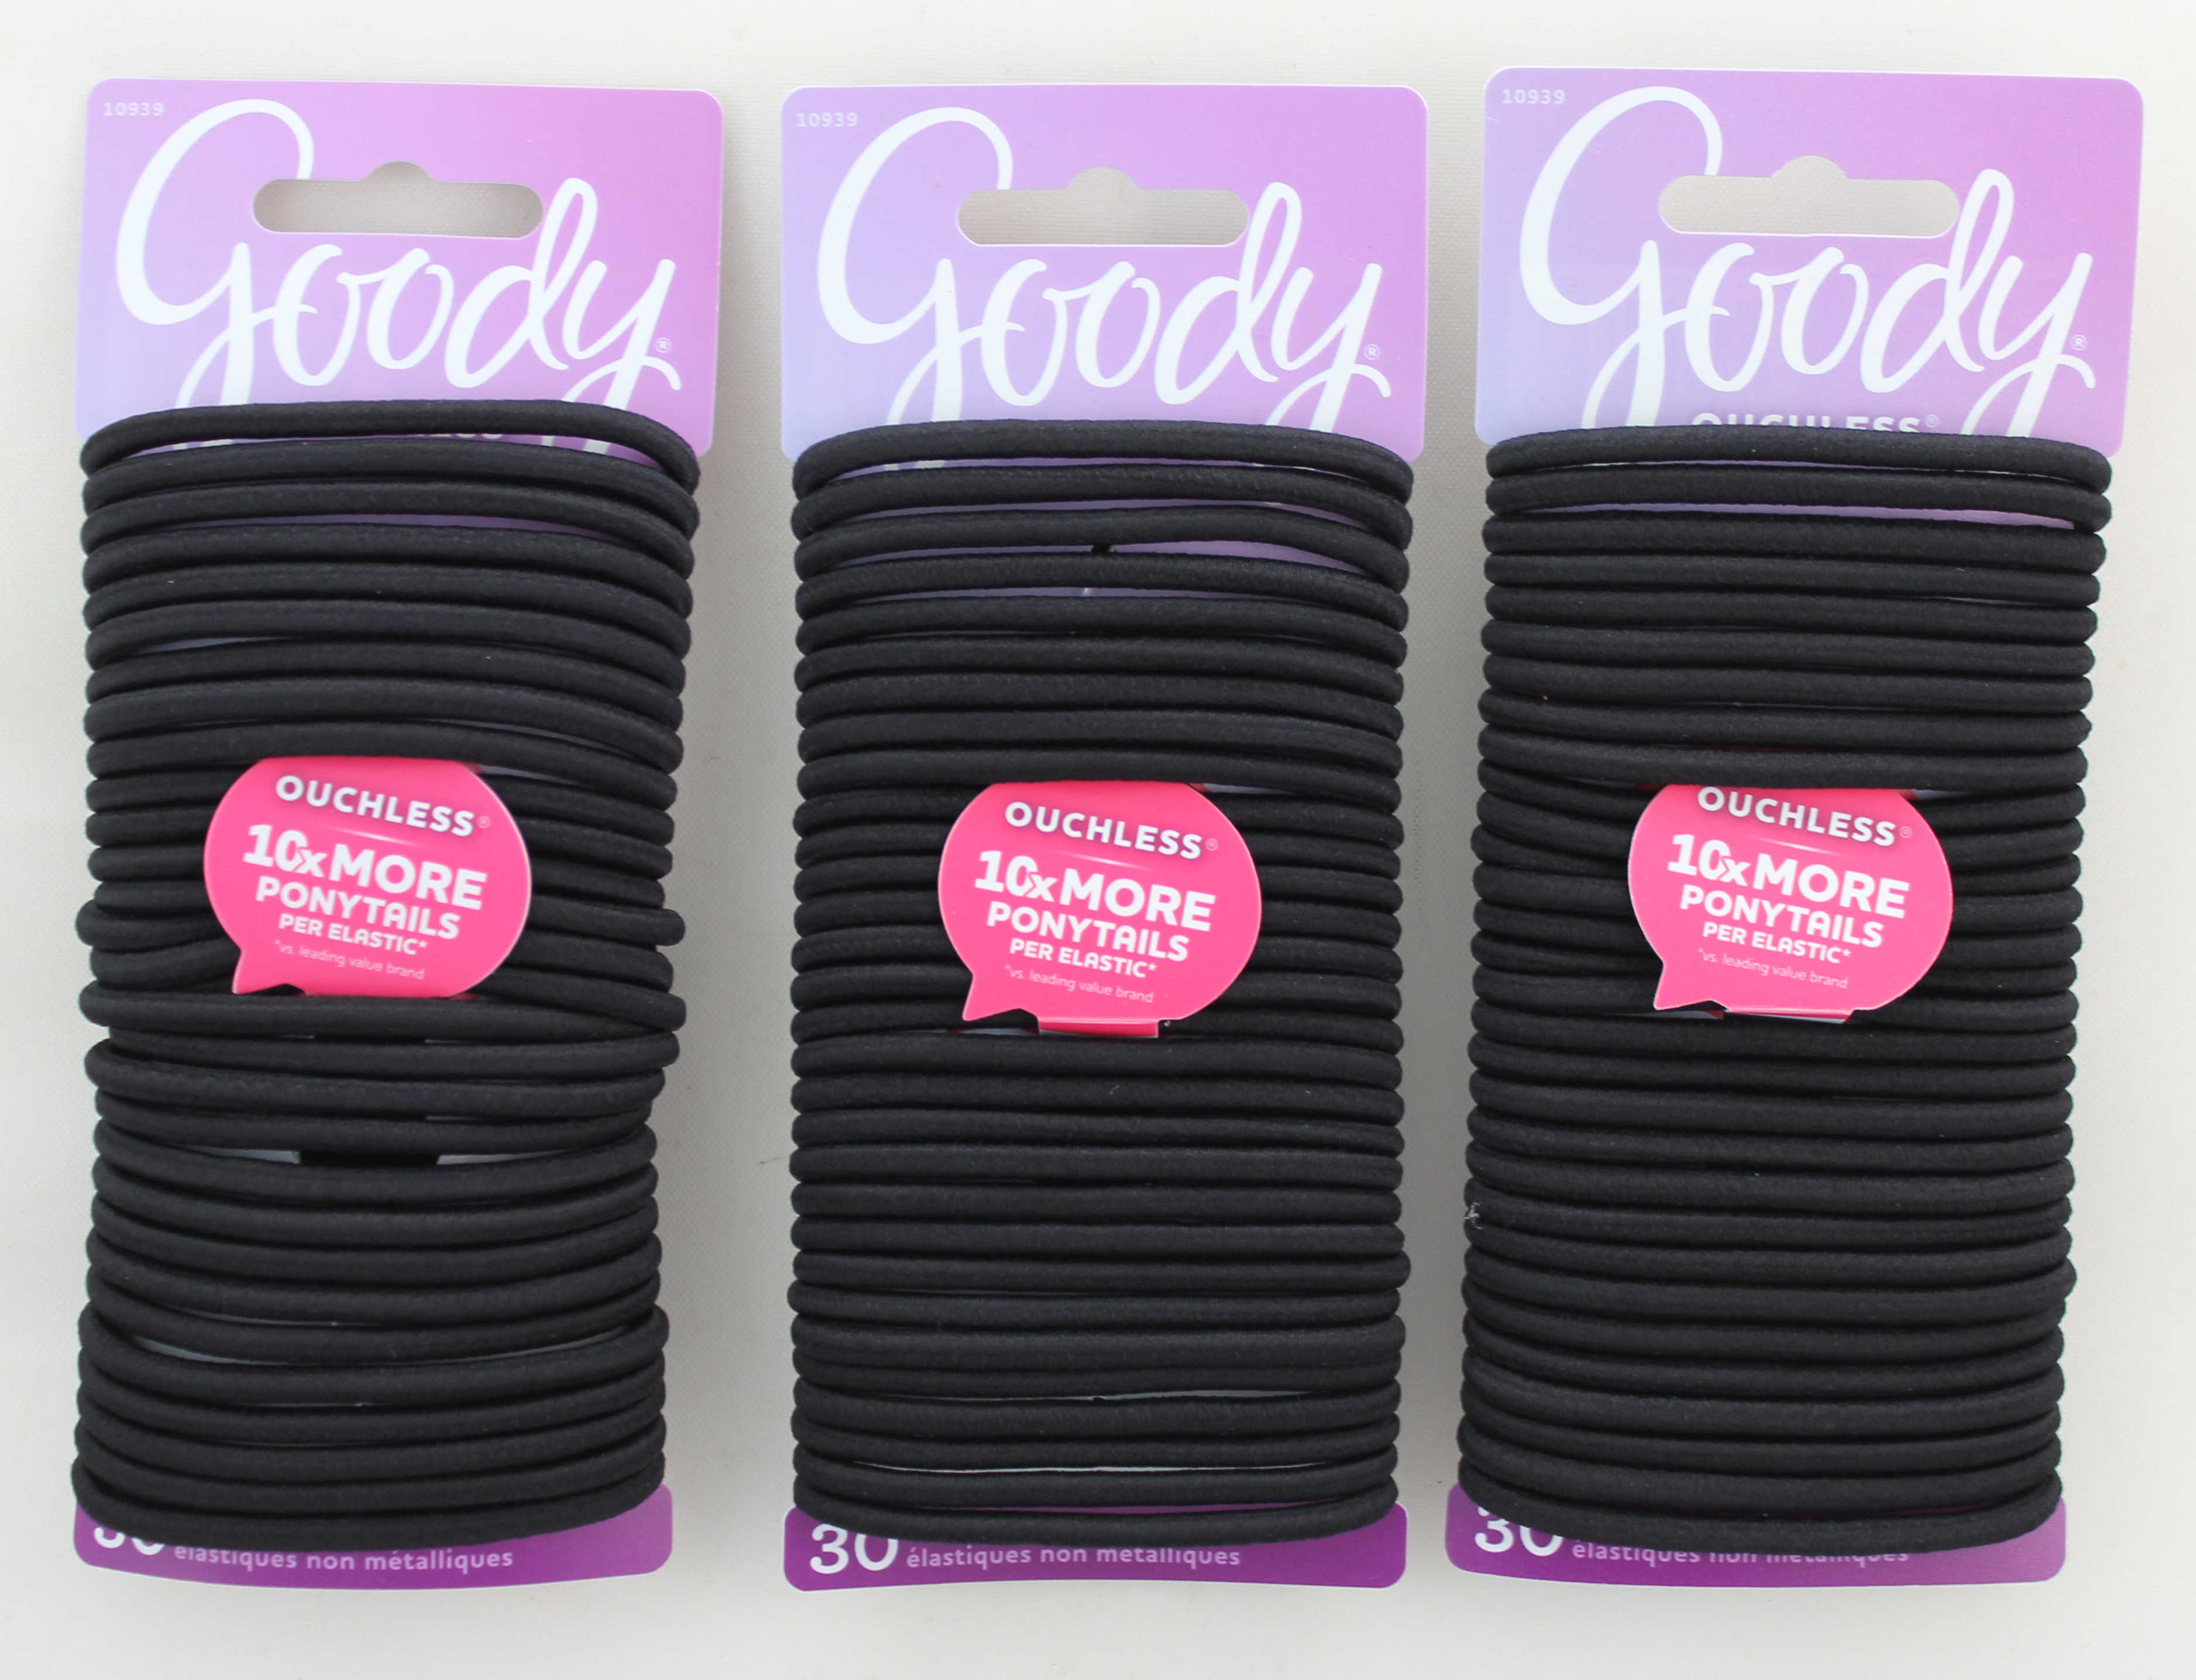 Goody Black Elastics 4MM, Ouchless, No Metal, Little Black Dress, 30CT